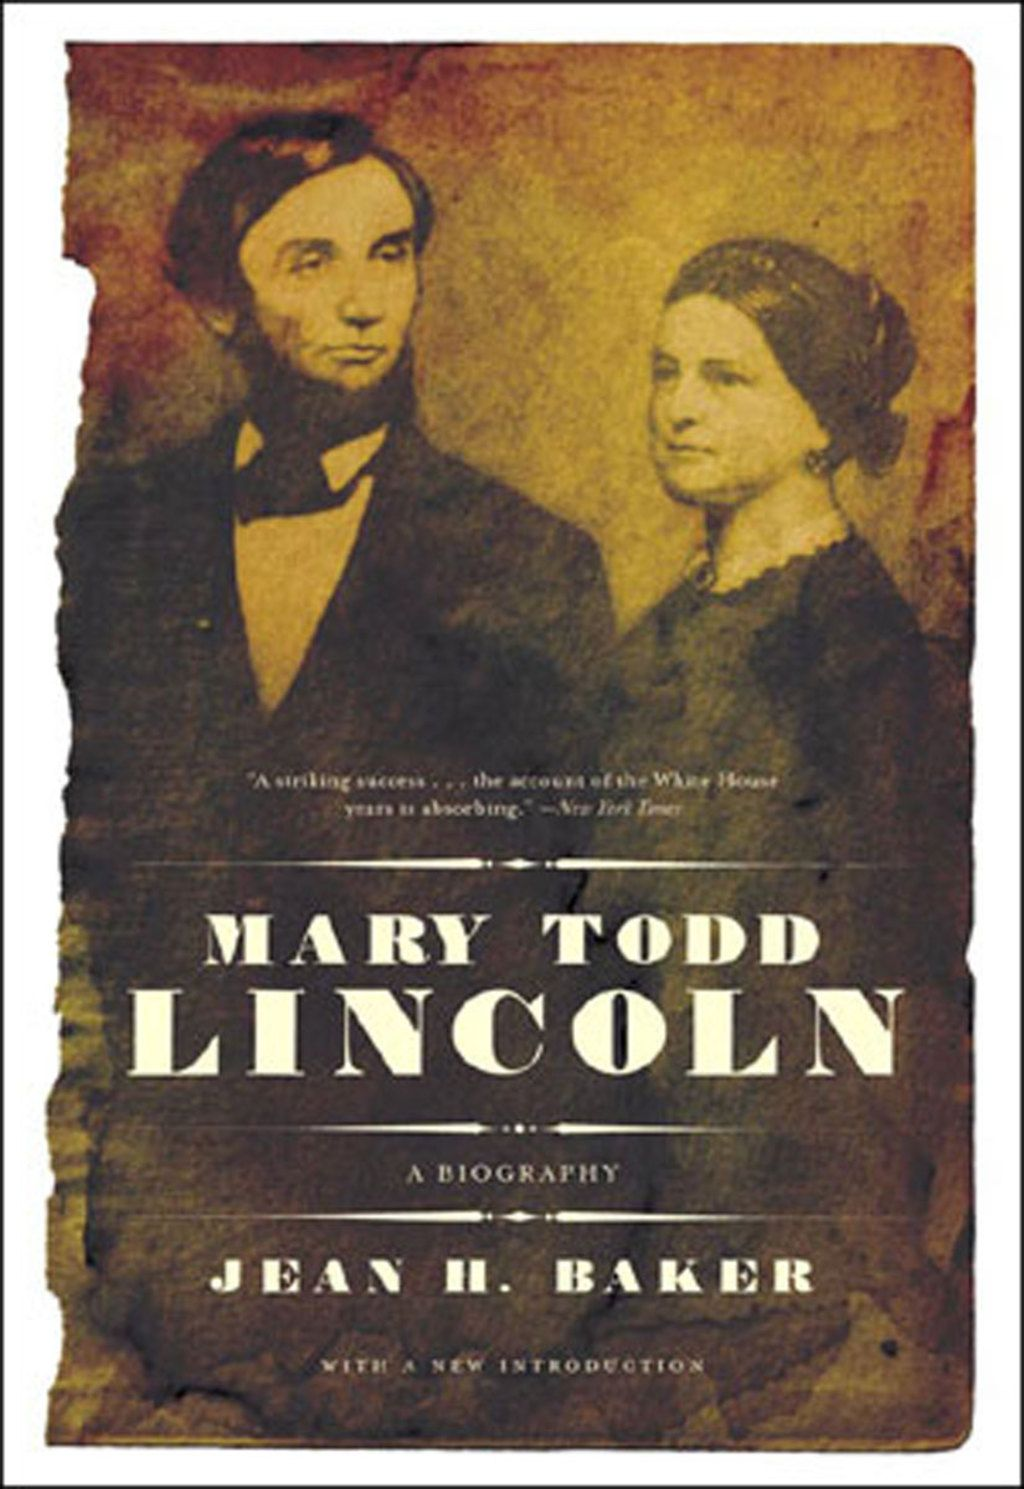 Mary Todd Lincoln A Biography Ebook Mary Todd Lincoln Biography Lincoln